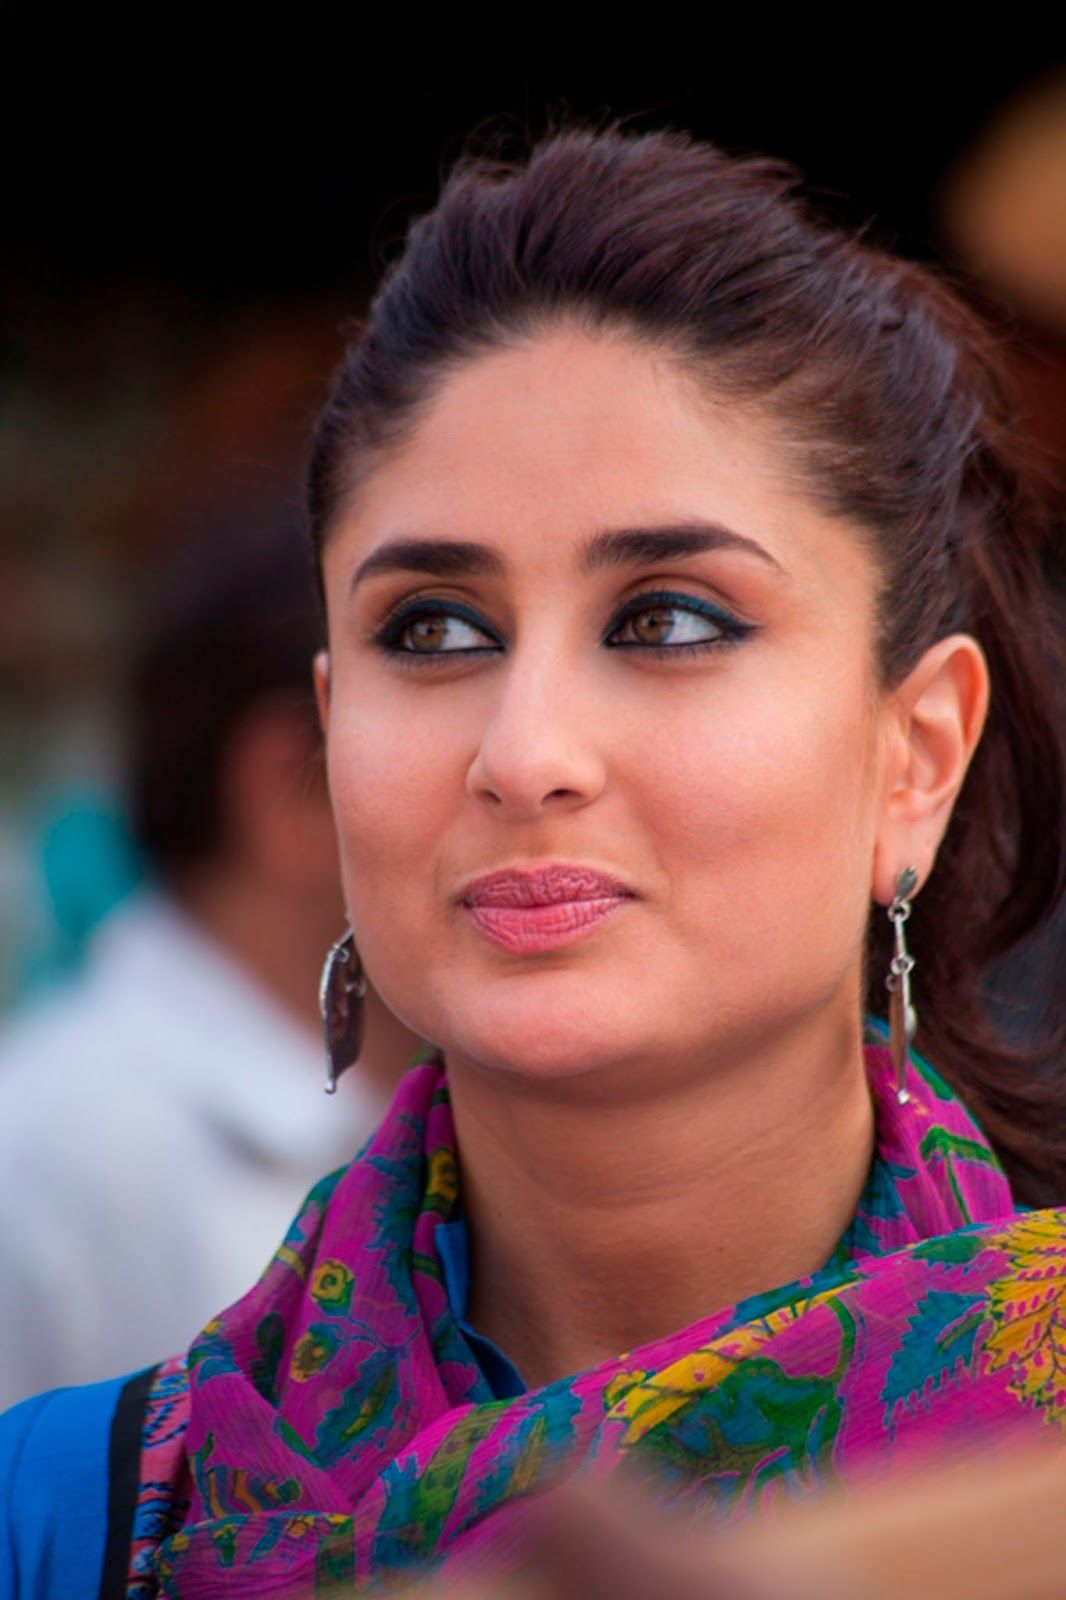 Kareena Kapoor Upcoming Movies List 2016 2017 2018 Release Dates Mt Wiki Upcoming Movie Hi Kareena Kapoor Wallpapers Kareena Kapoor Kareena Kapoor Khan